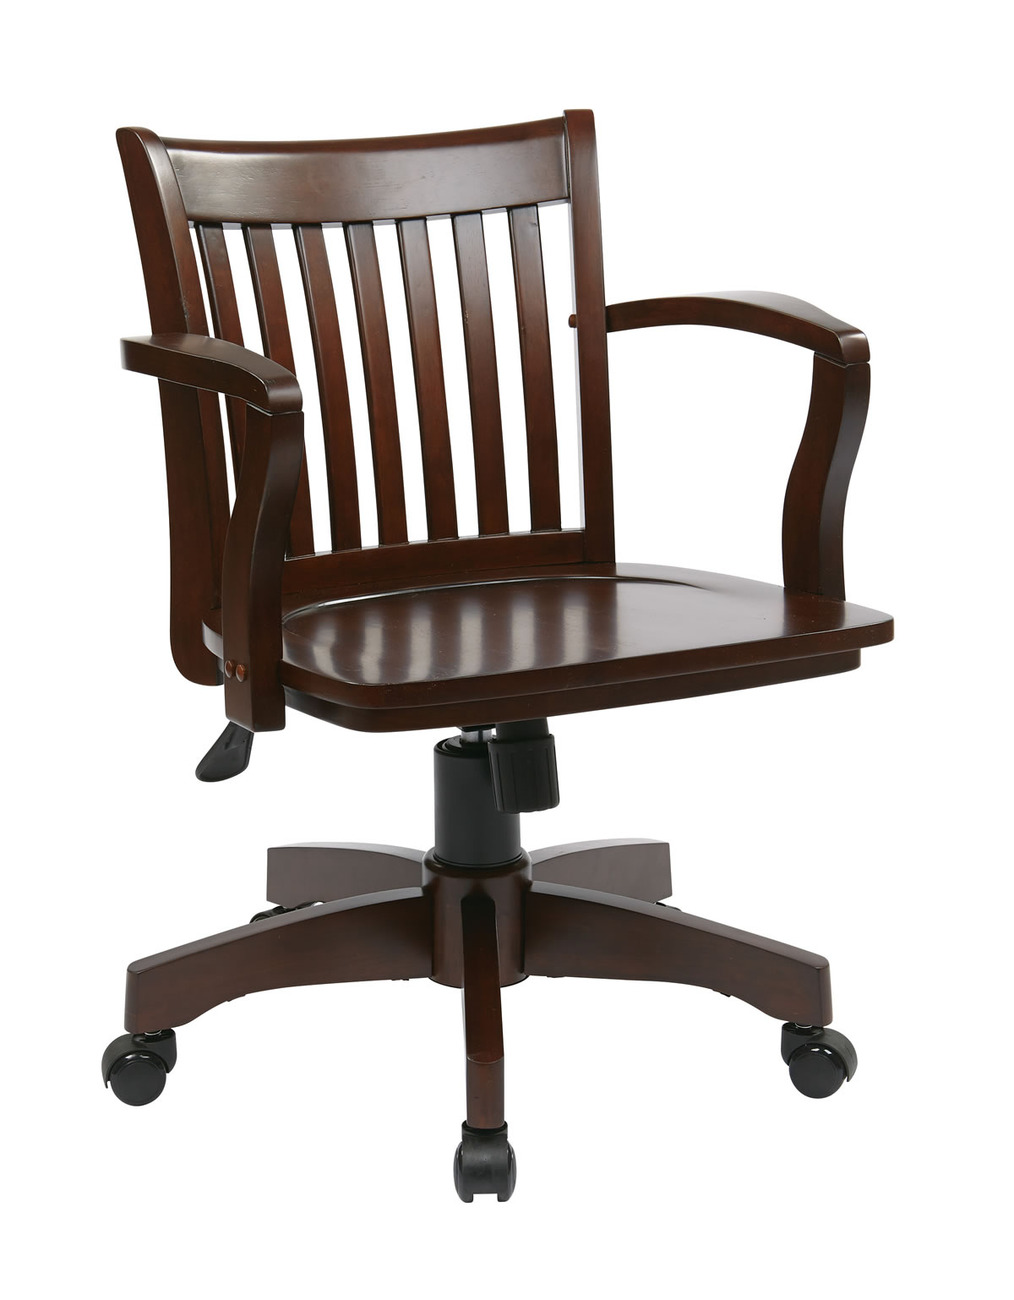 style swivel bankers office wood chair w arms slat back chairs